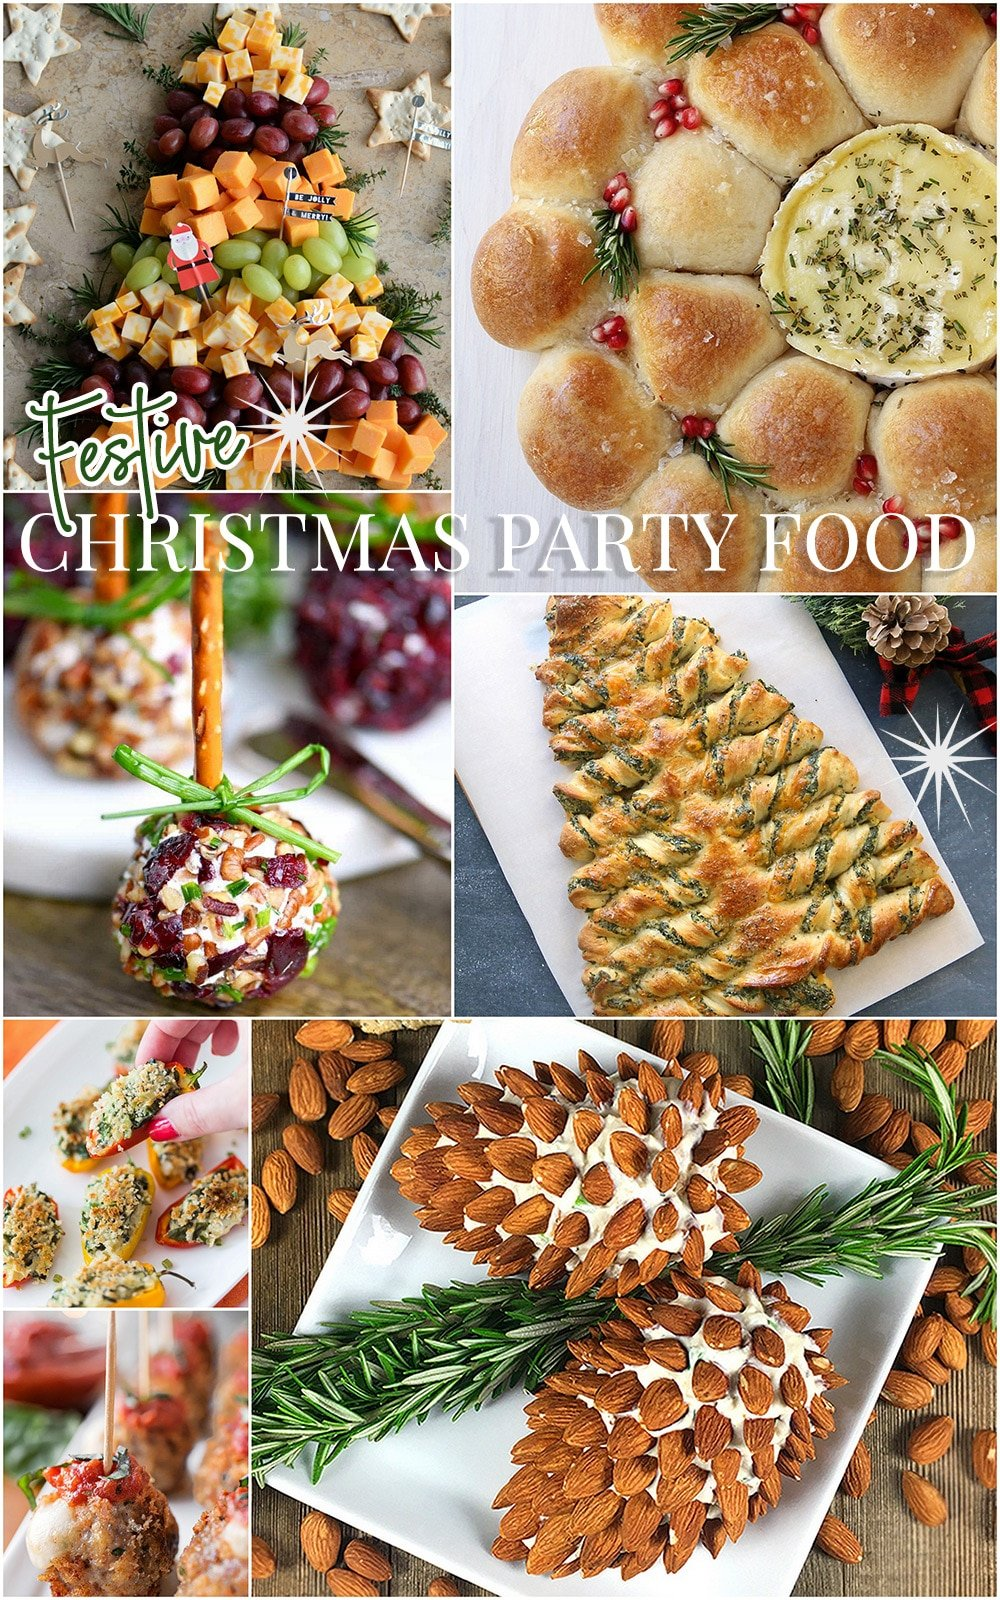 Festive Christmas Party Food Ideas Pizzazzerie